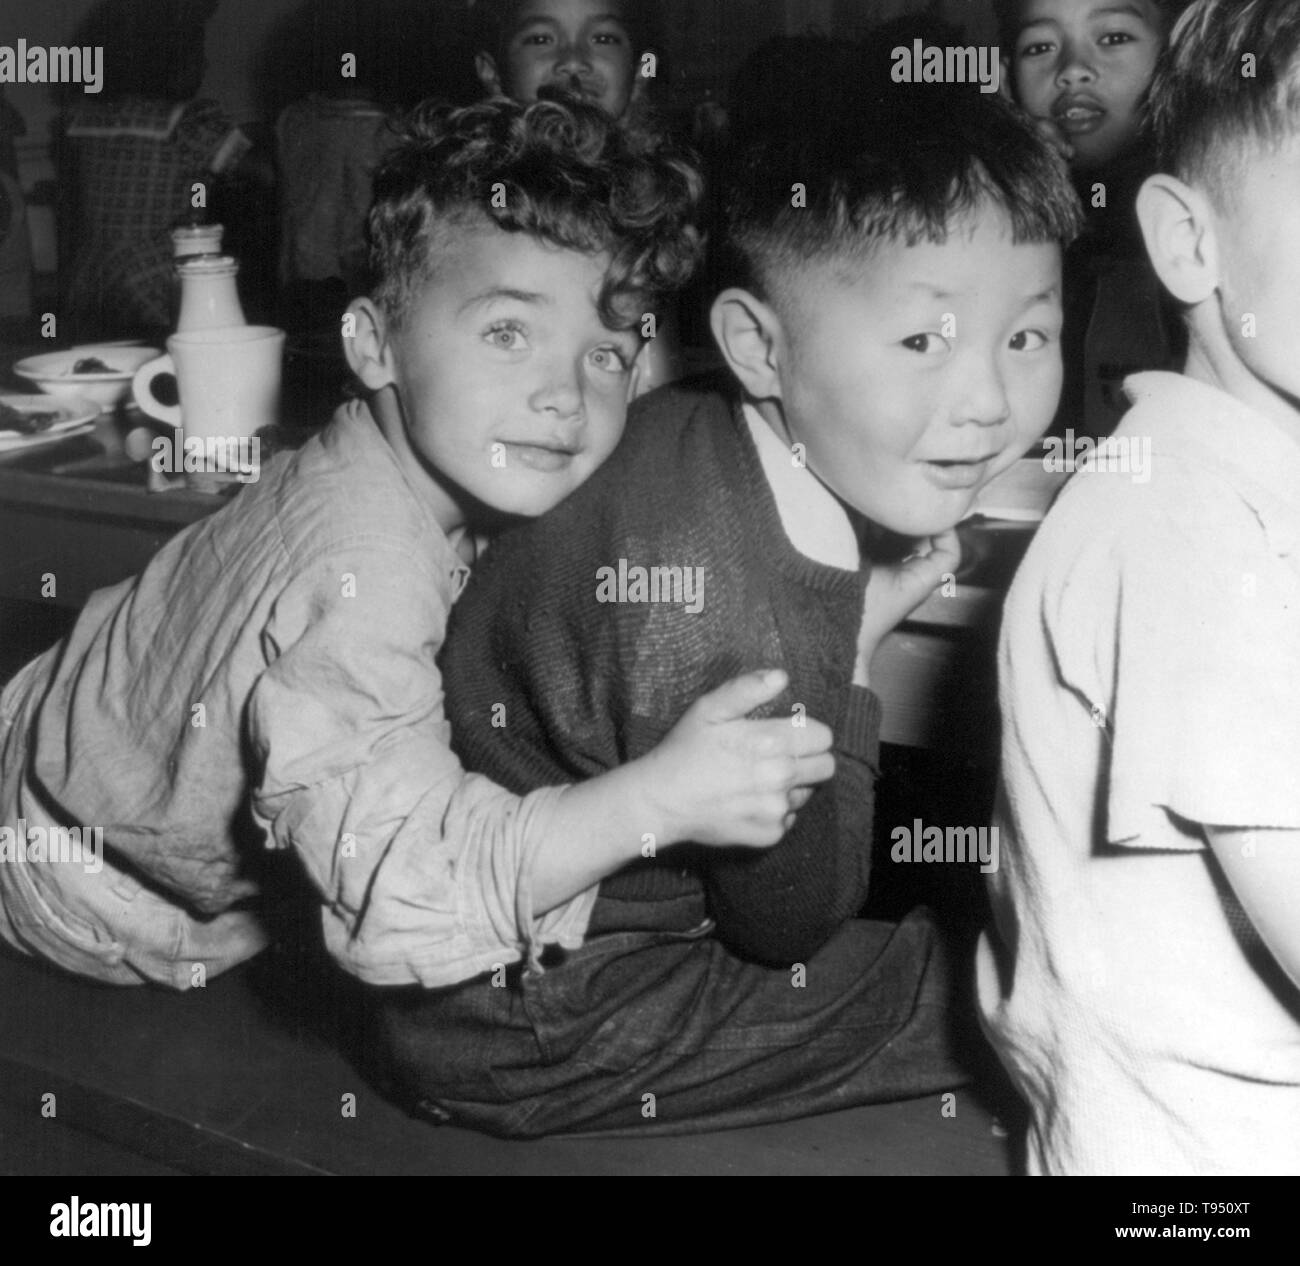 "Entitled: ""A lunch hour scene at the Weill public school in the international section. Many children of Japanese ancestry like the boy shown here with his chum, were evacuated with their parents from this neighborhood."" The internment of Japanese-Americans during WWII was the forced relocation and incarceration in camps of 110,000-120,000 people of Japanese ancestry ordered by President Roosevelt shortly after Japan's attack on Pearl Harbor. Stock Photo"